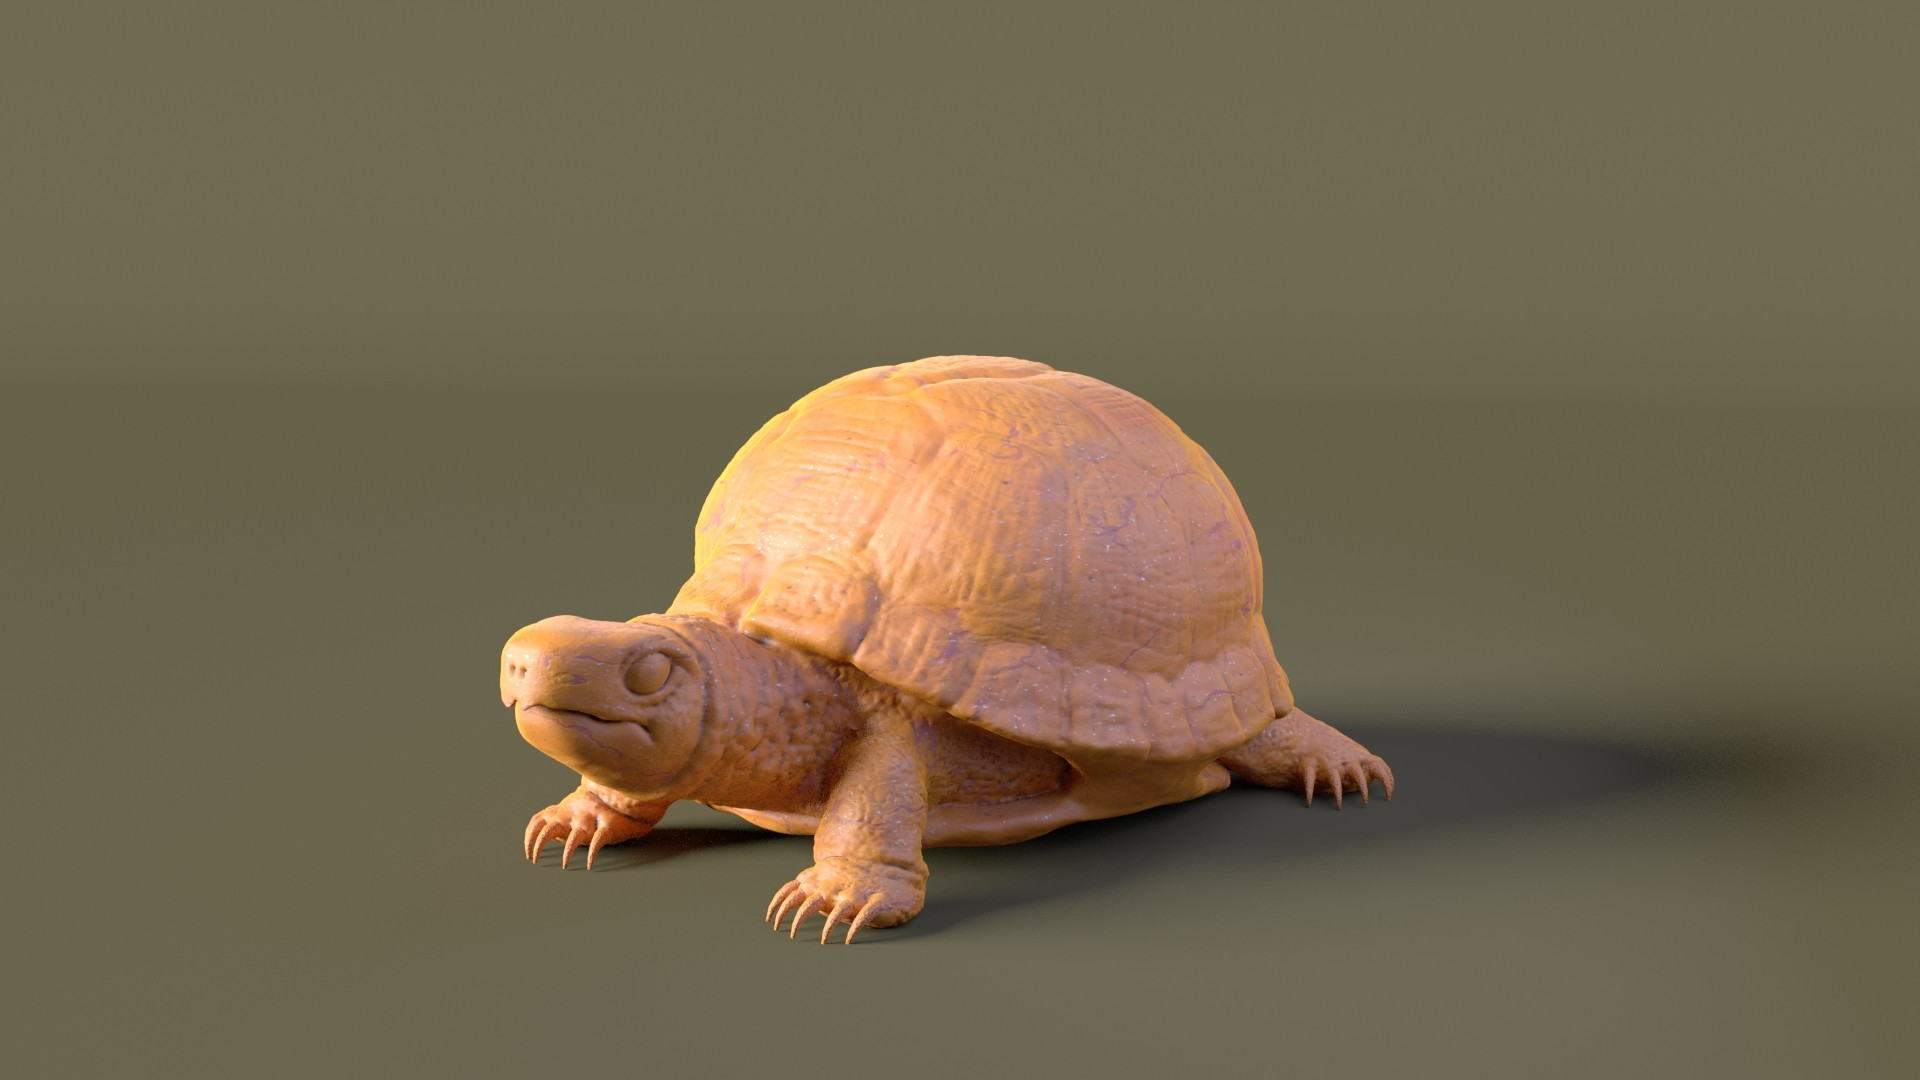 Day8.Turtle Turtle Time:1 Hour 40 Minutes